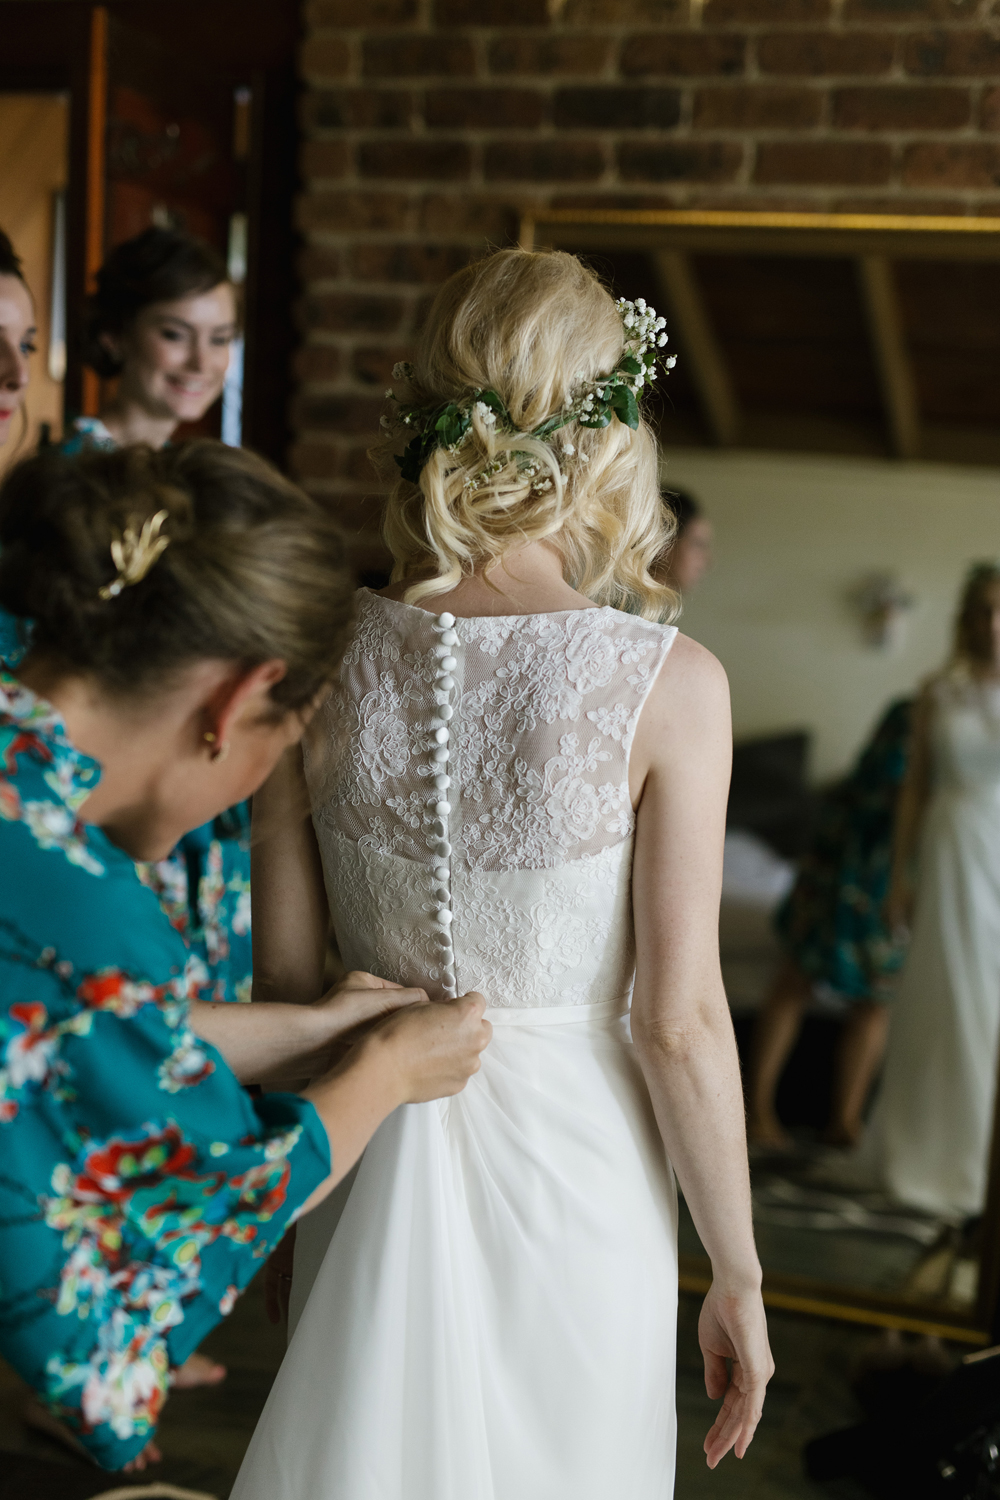 020-Byron-Bay-Wedding-Photographer-Carly-Tia-Photography.jpg